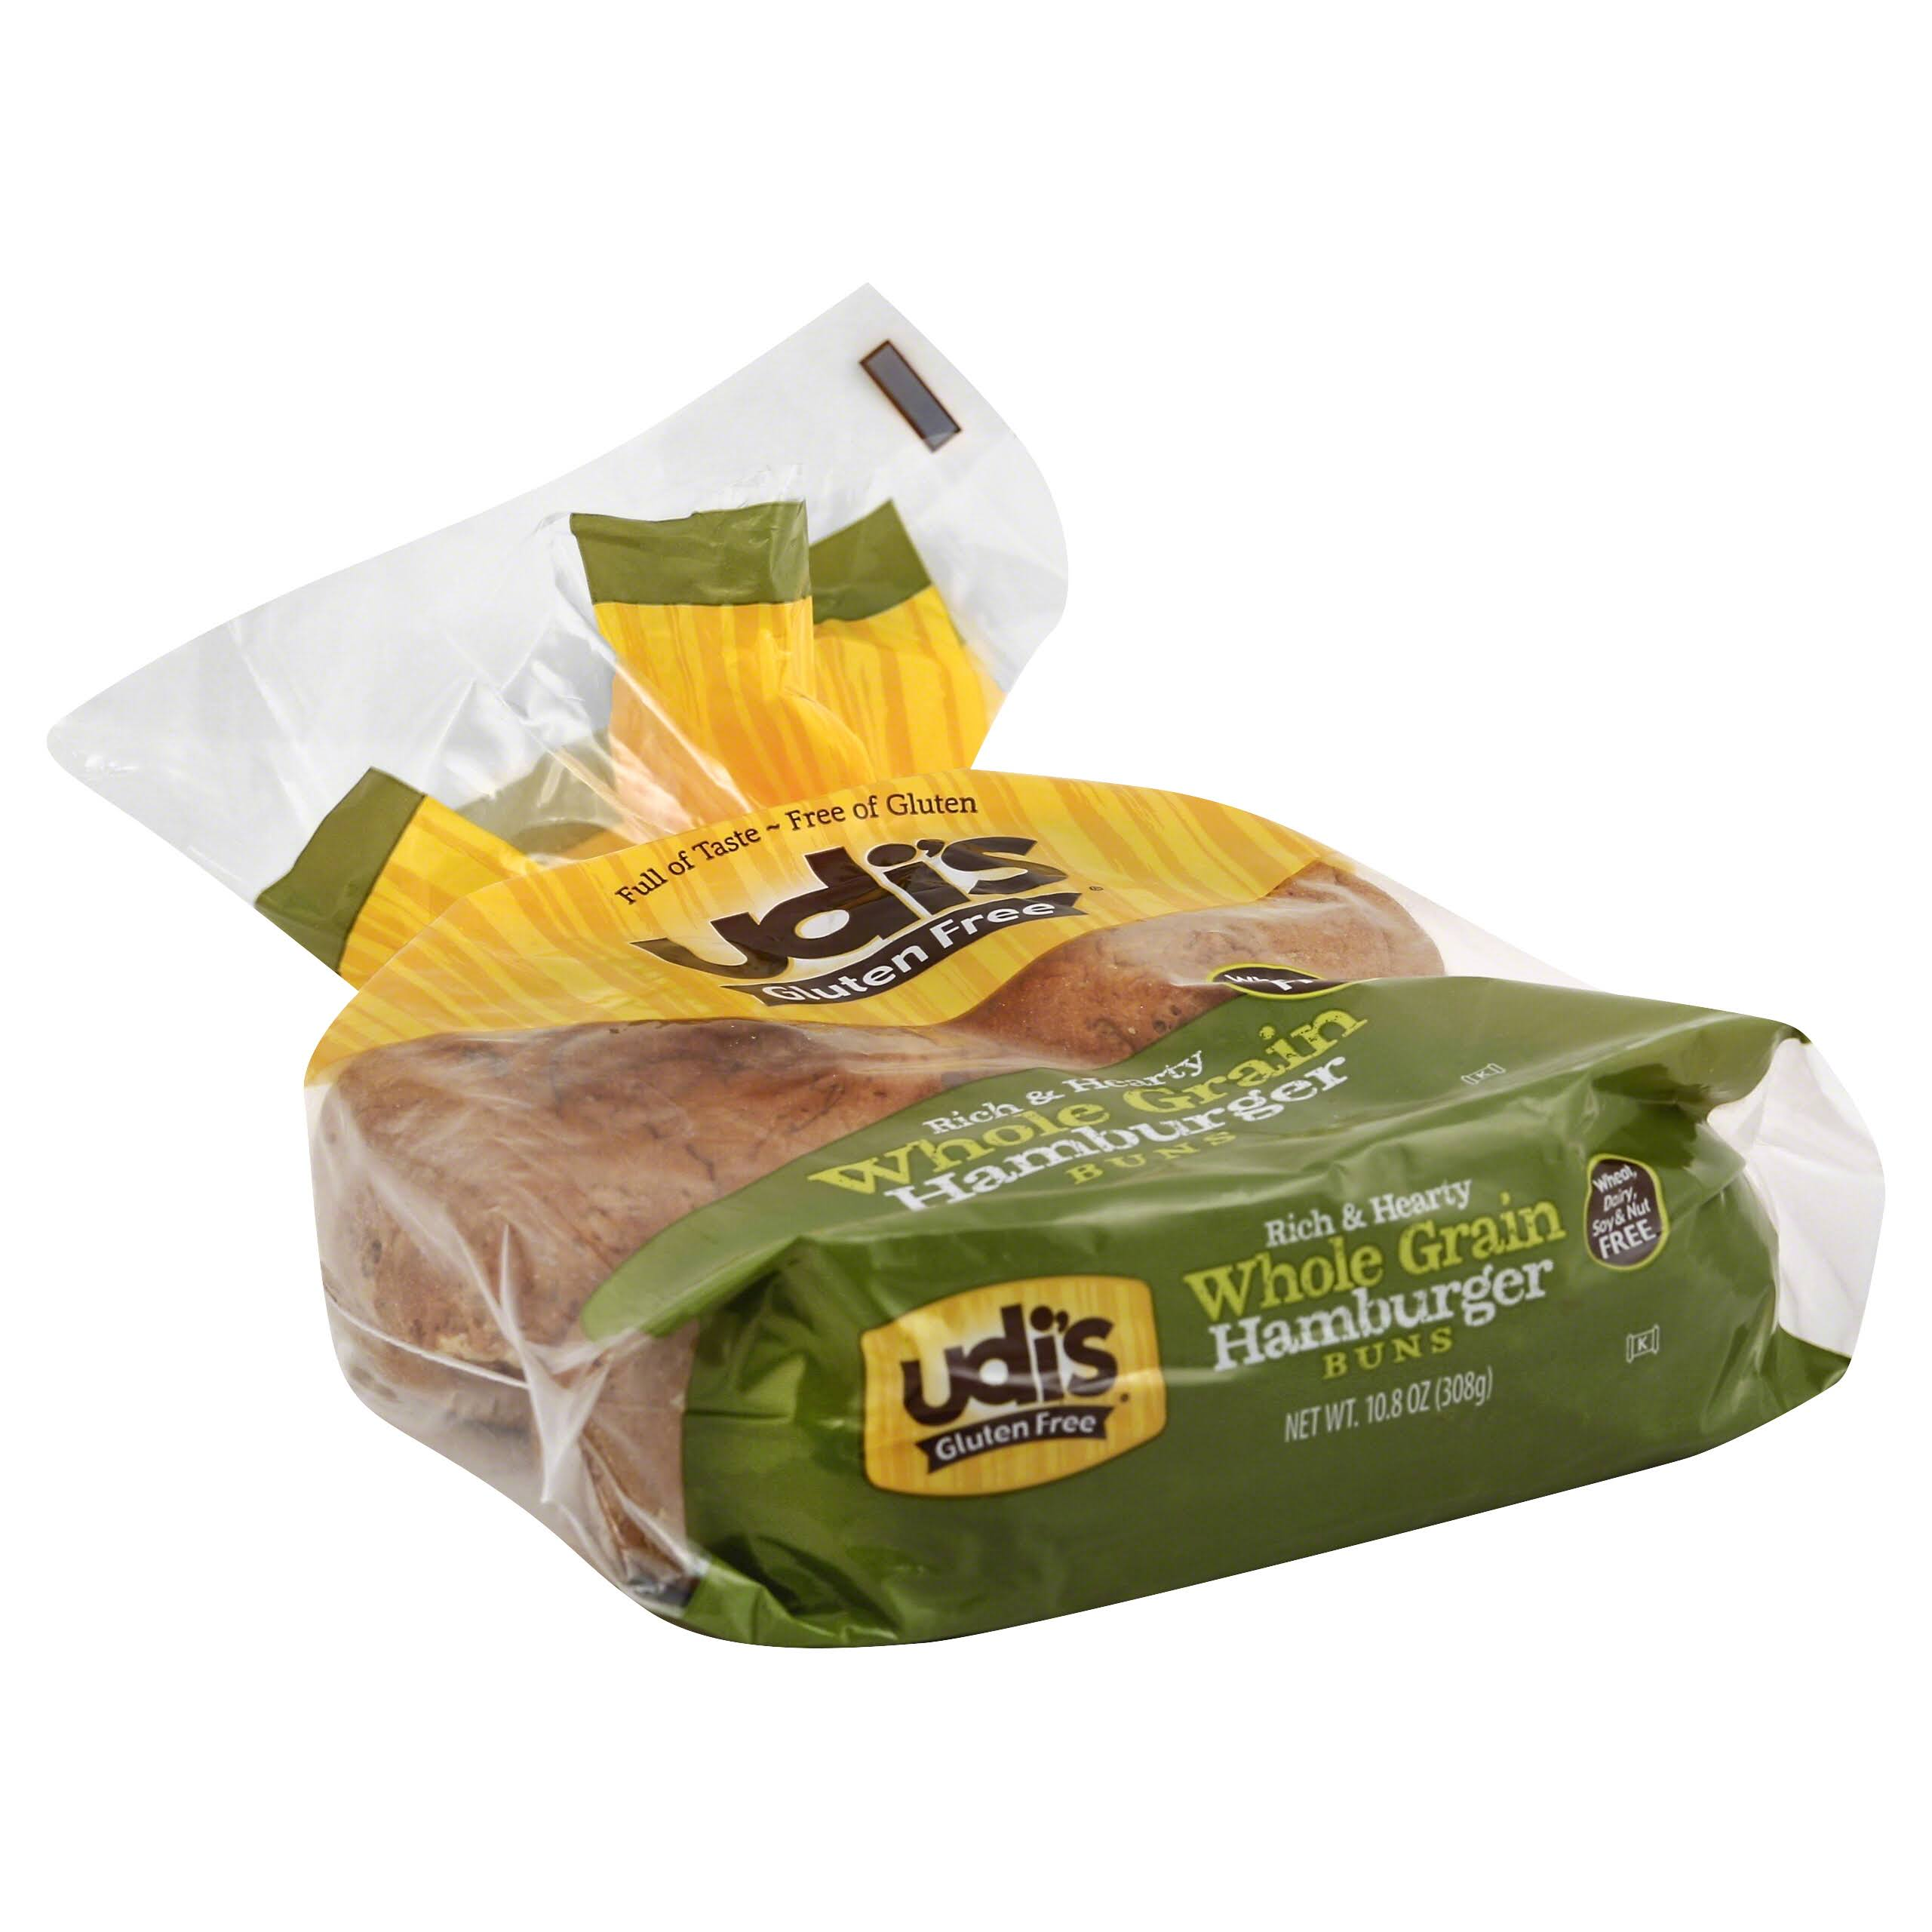 Udi's Gluten Free Whole Grain Hamburger Buns - 4 Pack